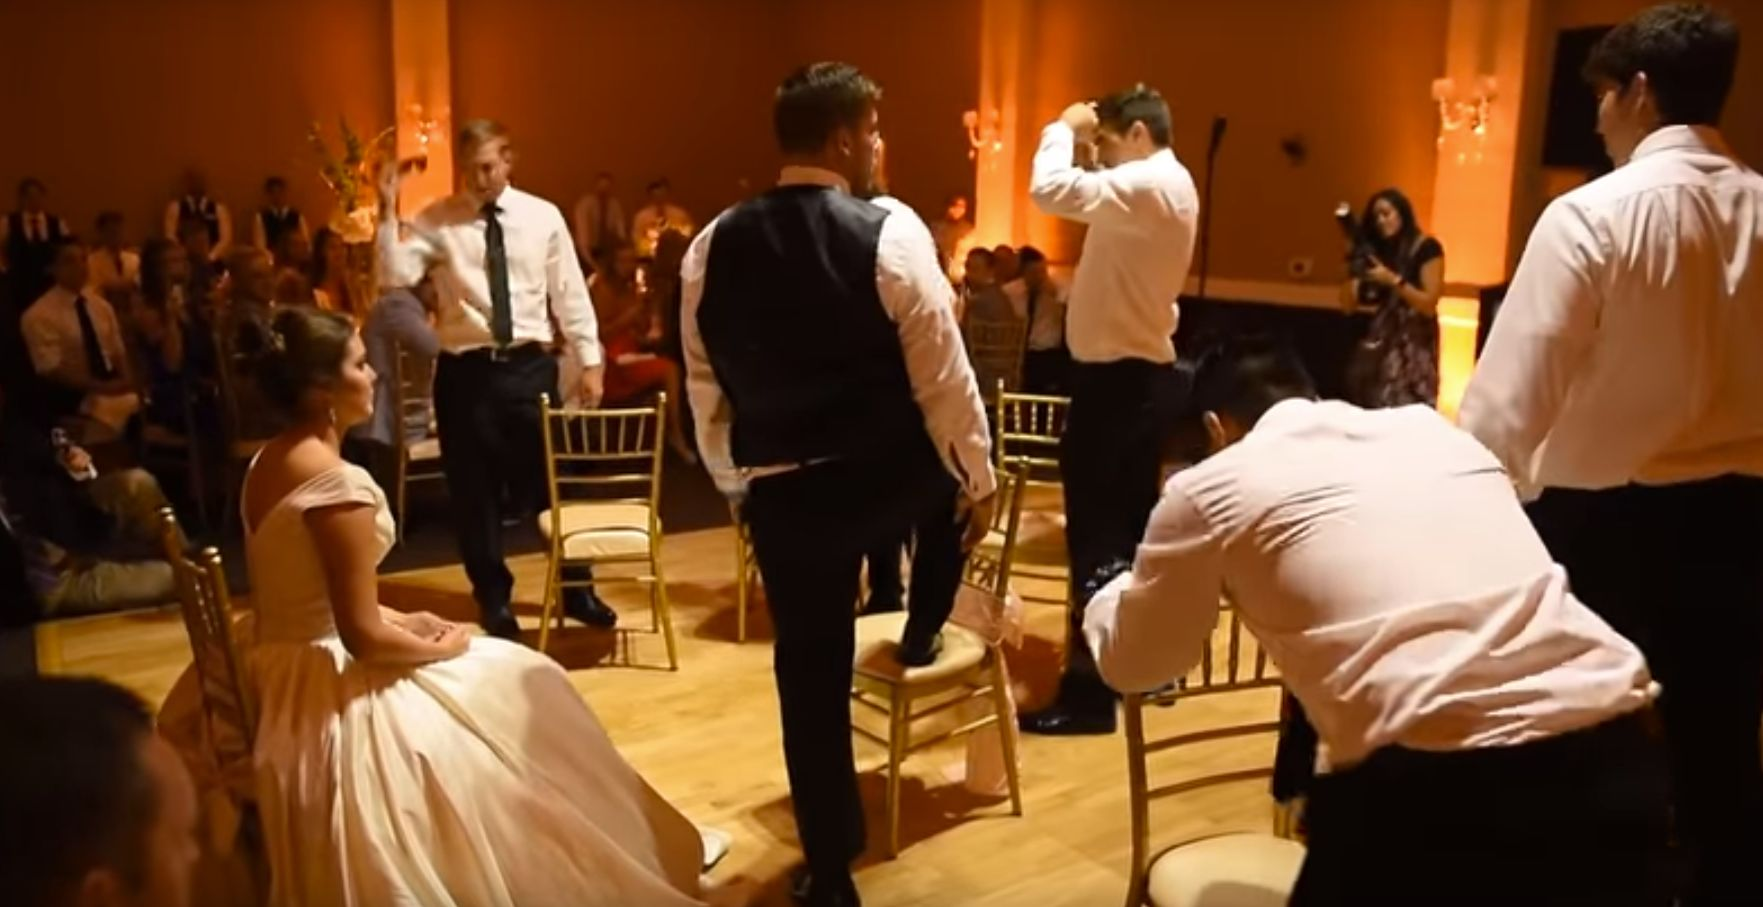 Groom Surprises Bride With Amazing First Dance... That Doesn't Include